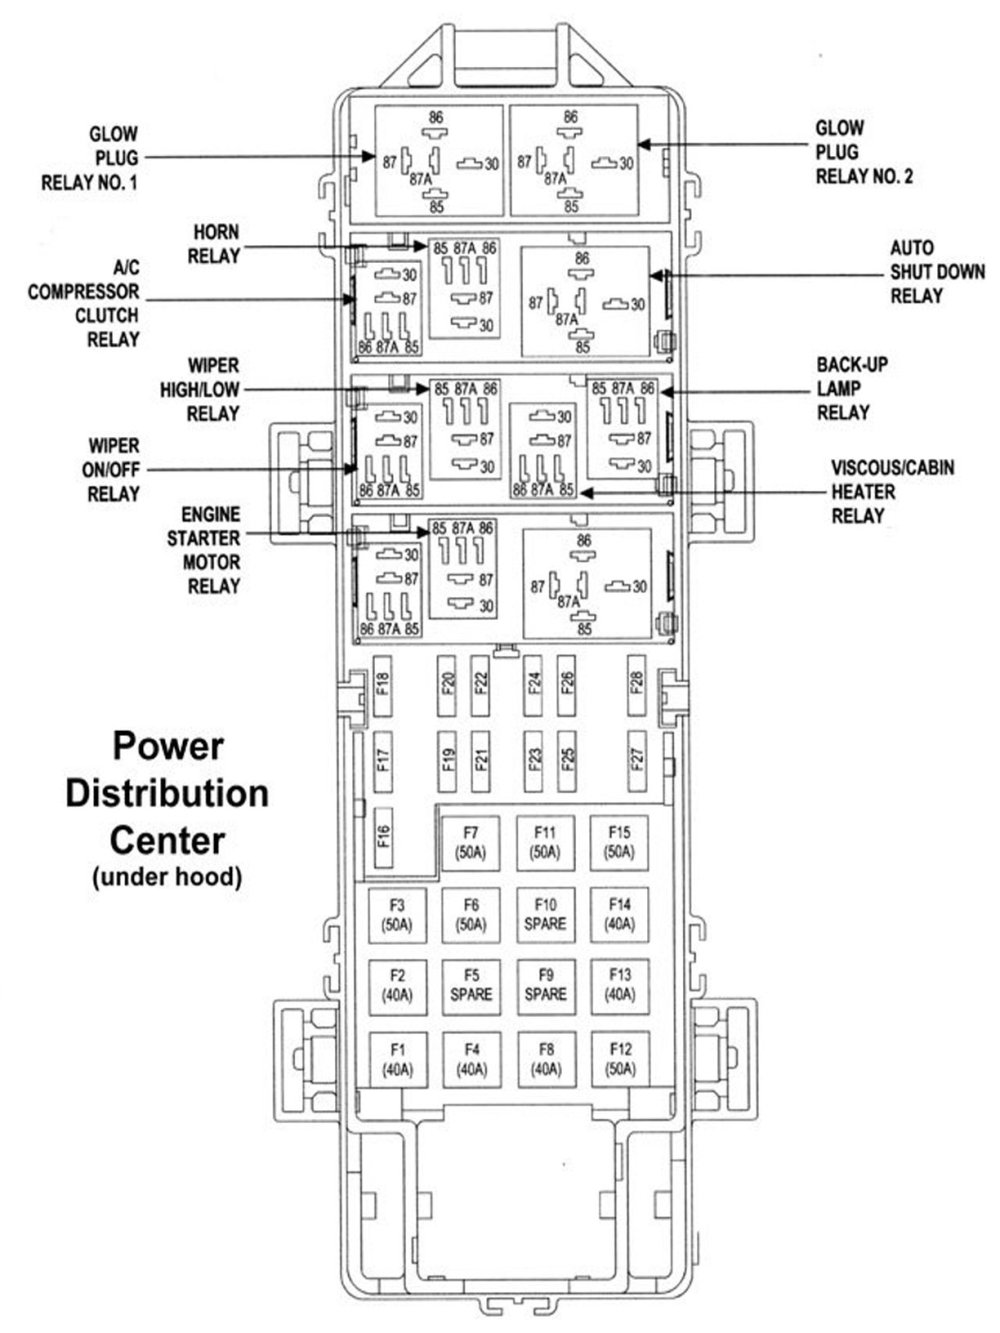 medium resolution of 1999 jeep grand cherokee laredo fuse box wiring diagram sheet 1999 jeep grand cherokee relay box